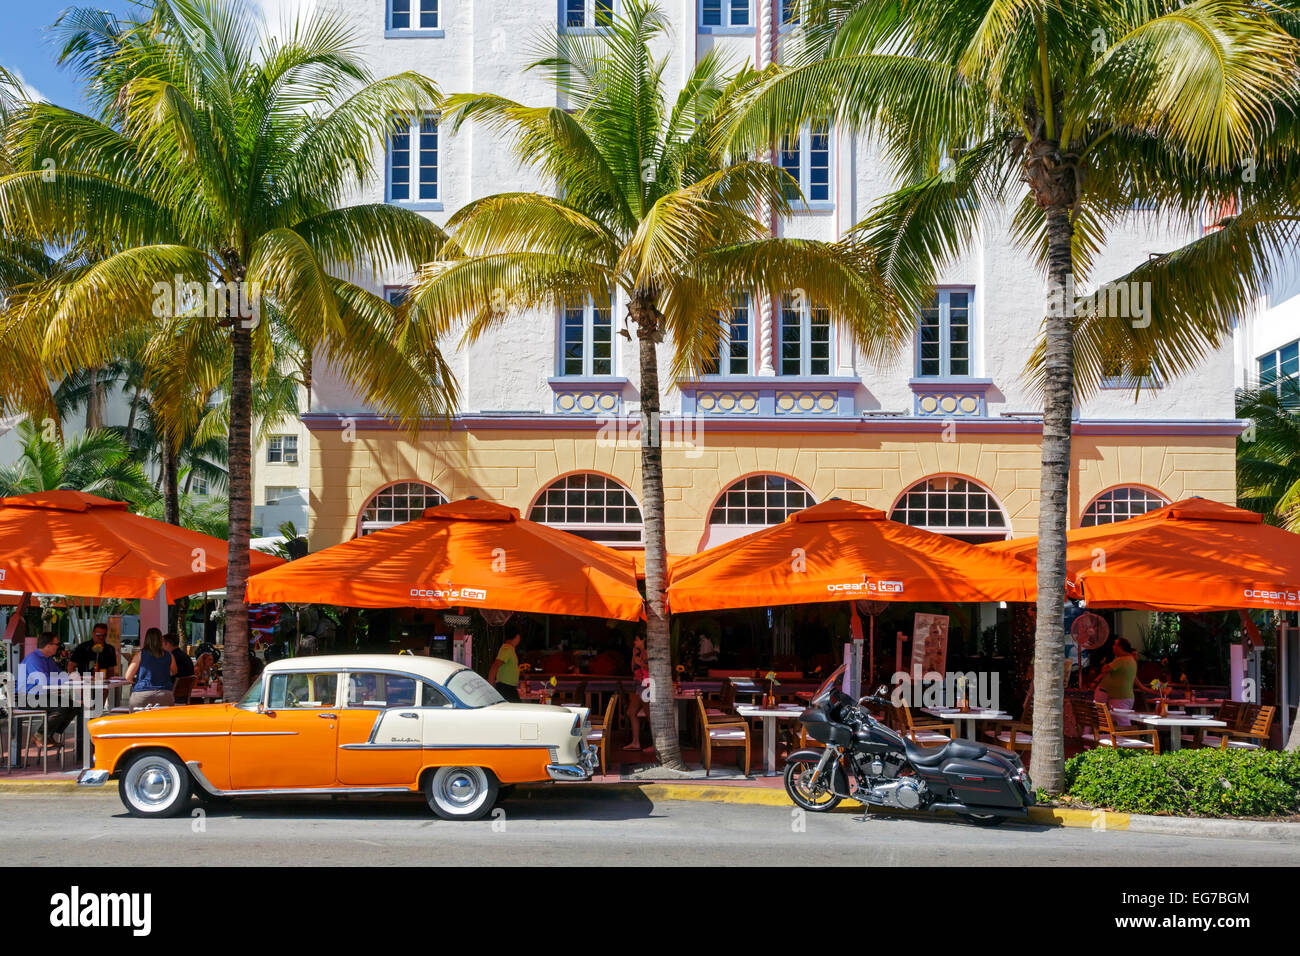 Art-Deco-Bauplanung am Ocean Drive, South Beach Miami, Florida, USA mit einem Café-Restaurant unten Stockbild